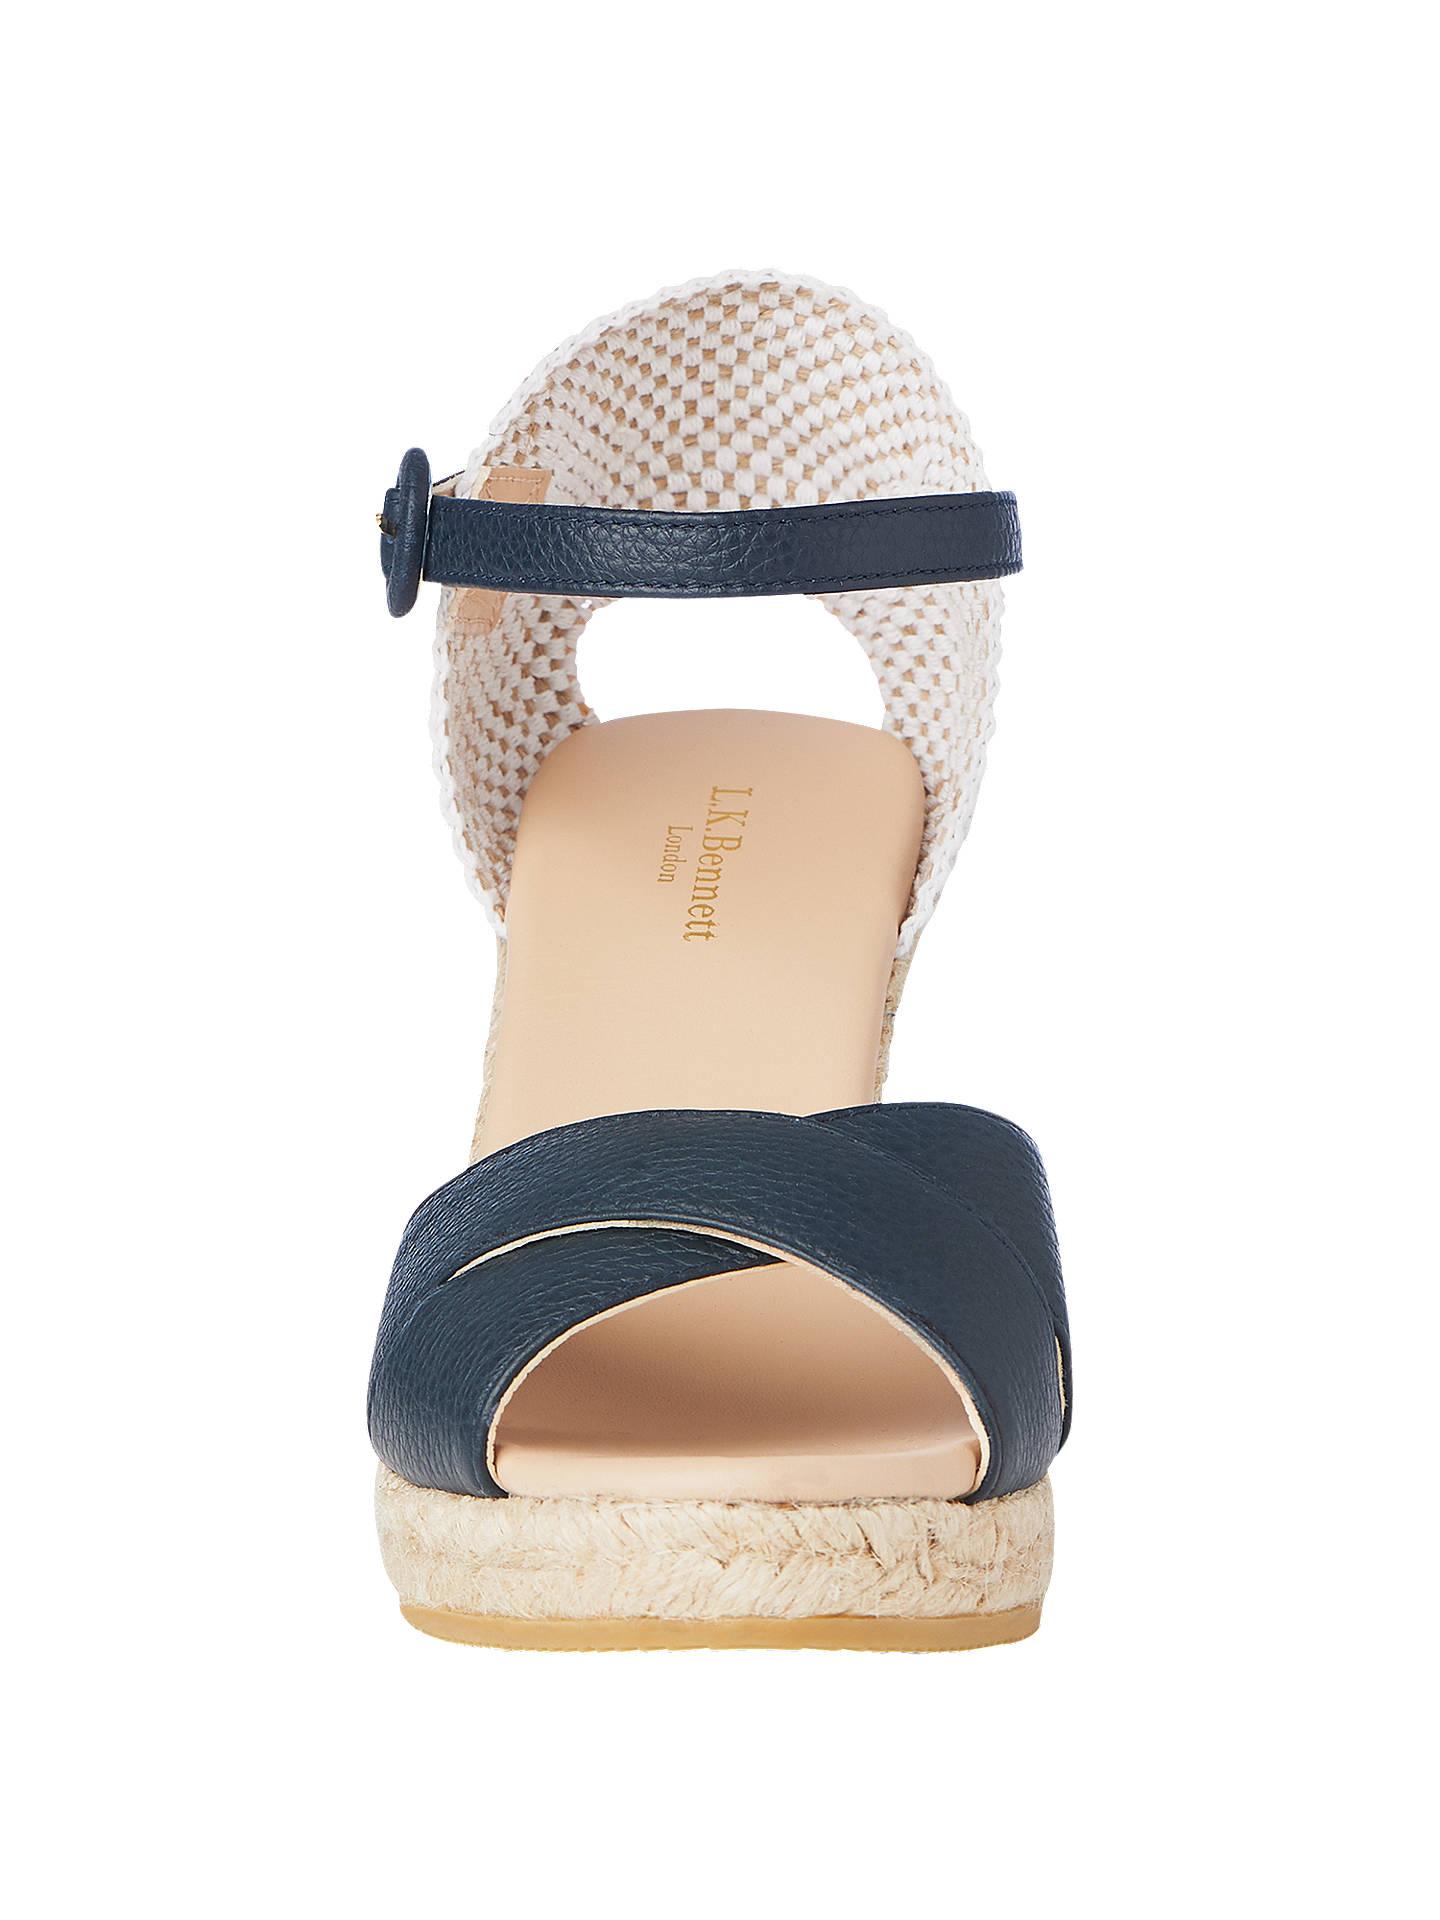 ab8a7577330 L.K.Bennett Angele Wedge Heel Sandals at John Lewis   Partners